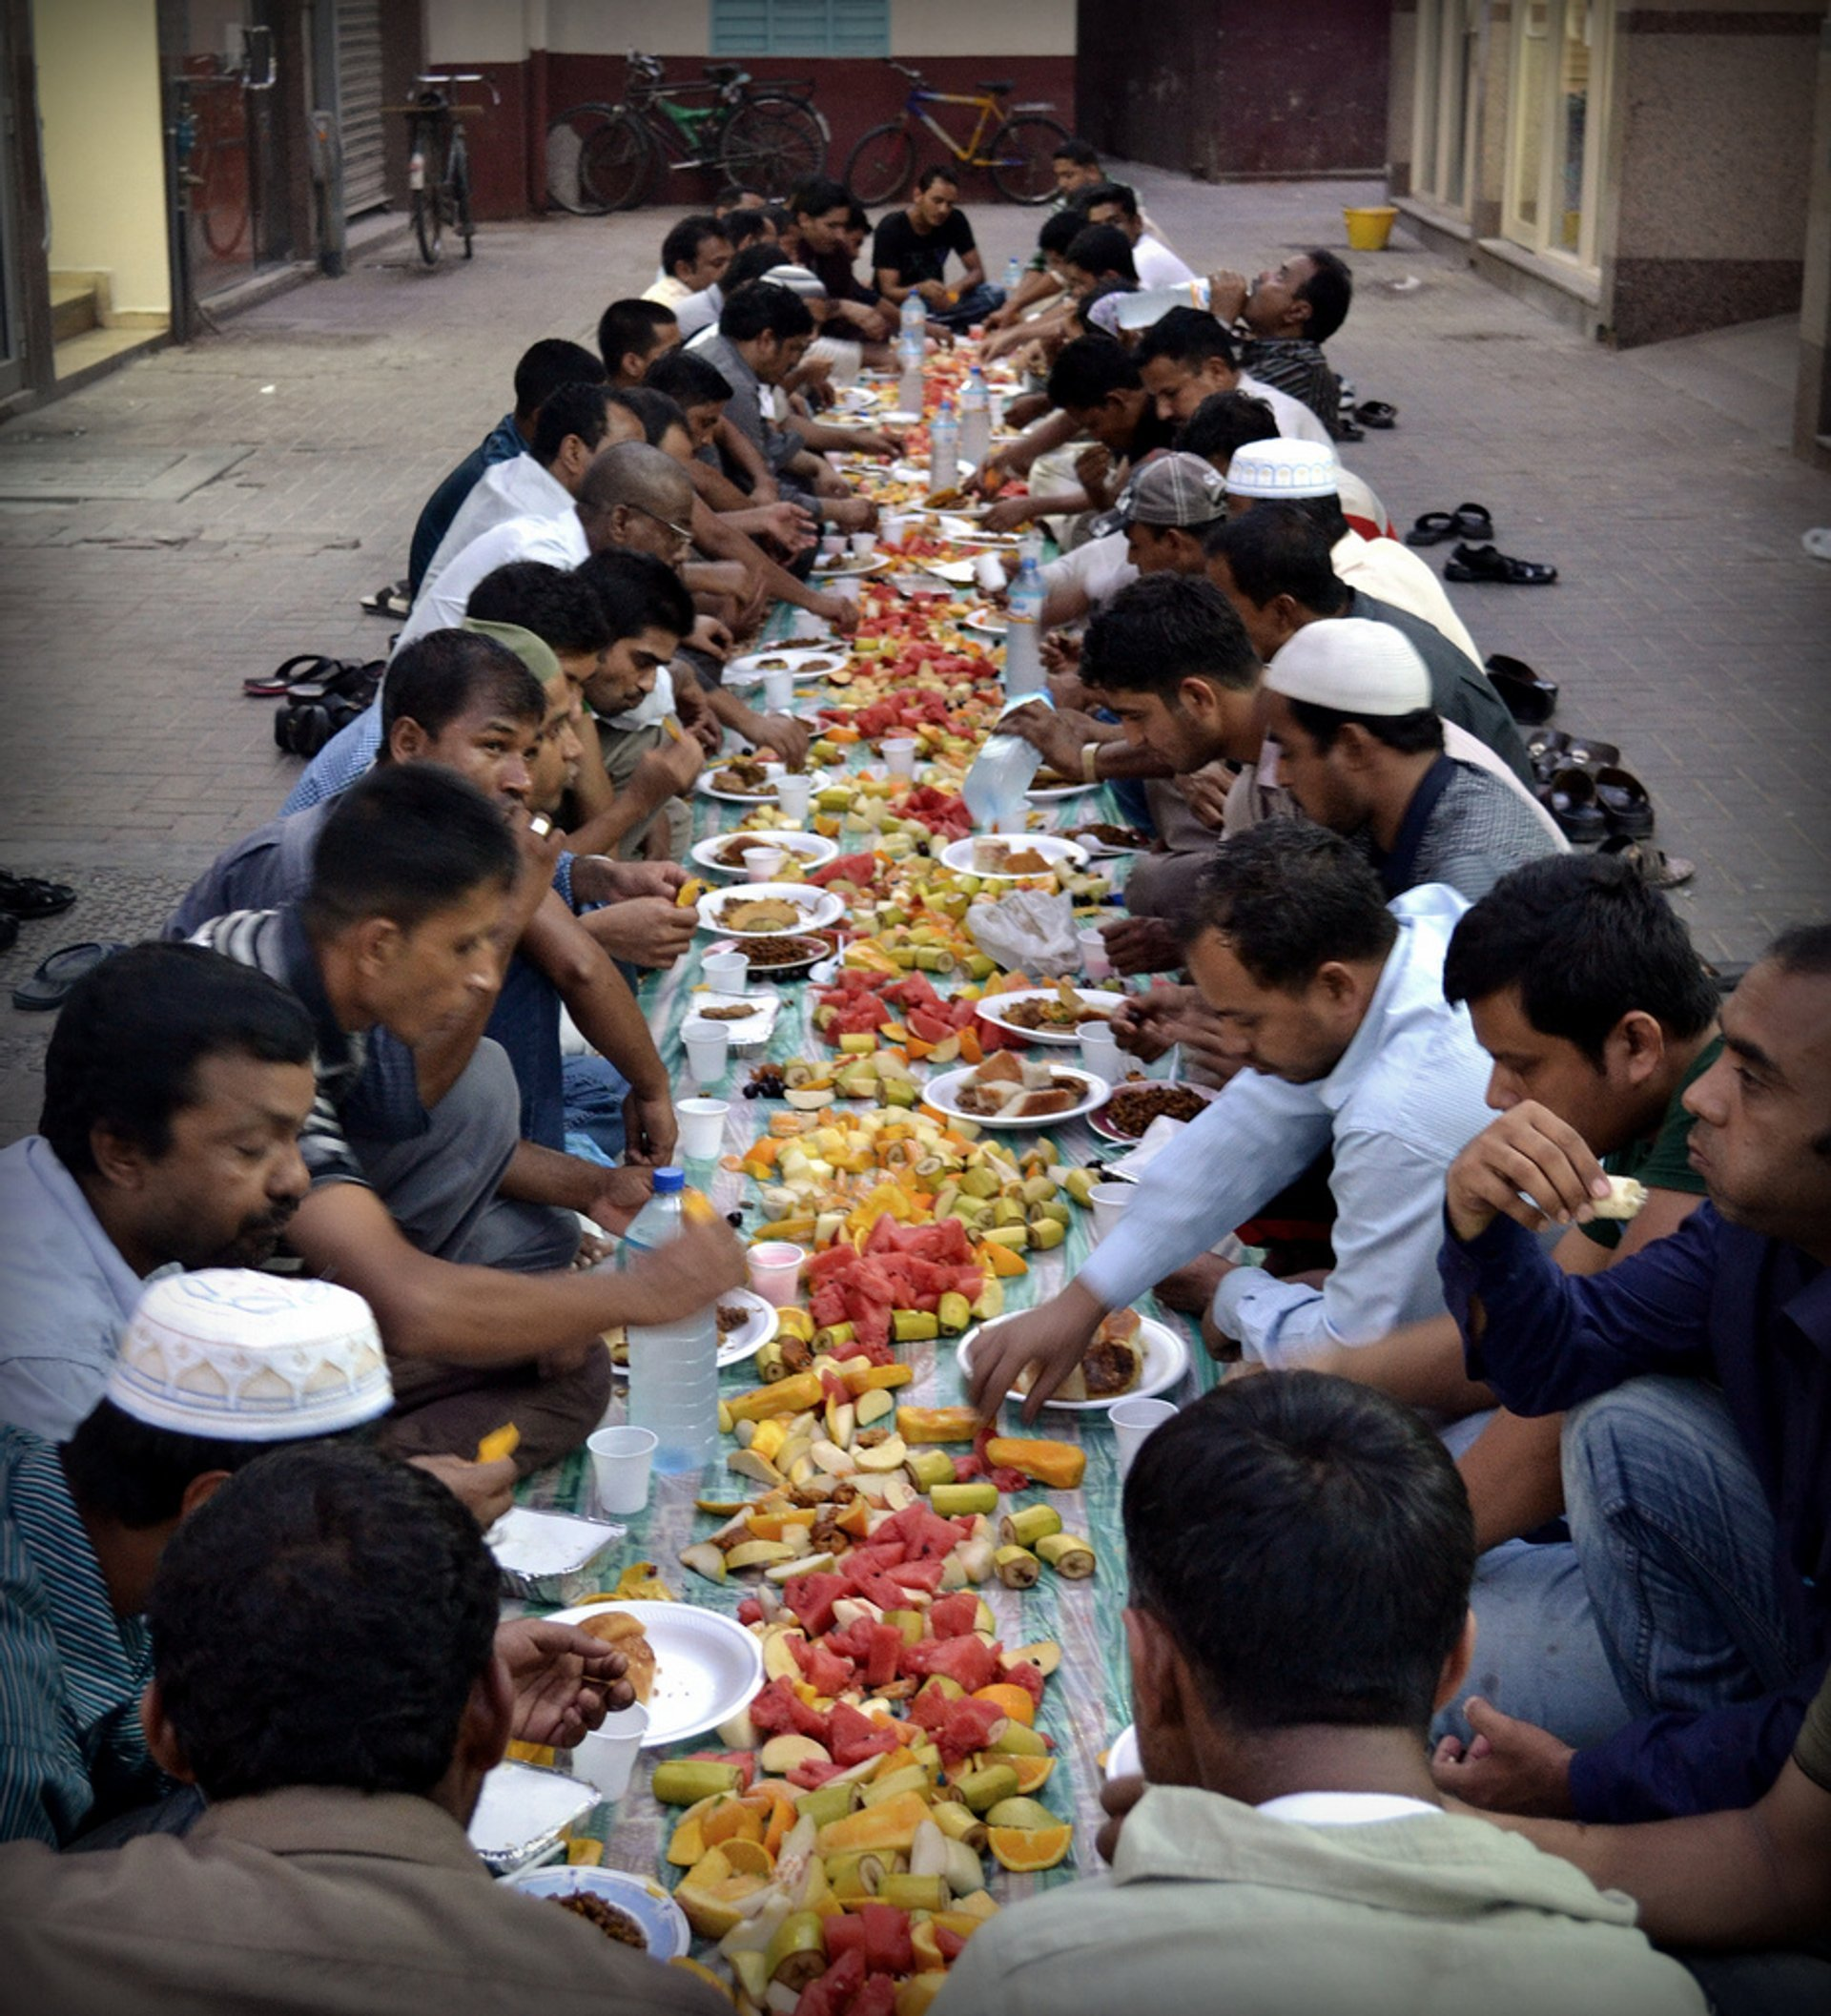 When the night comes people stop to fasting, sitting on street and eat a meal together 2020